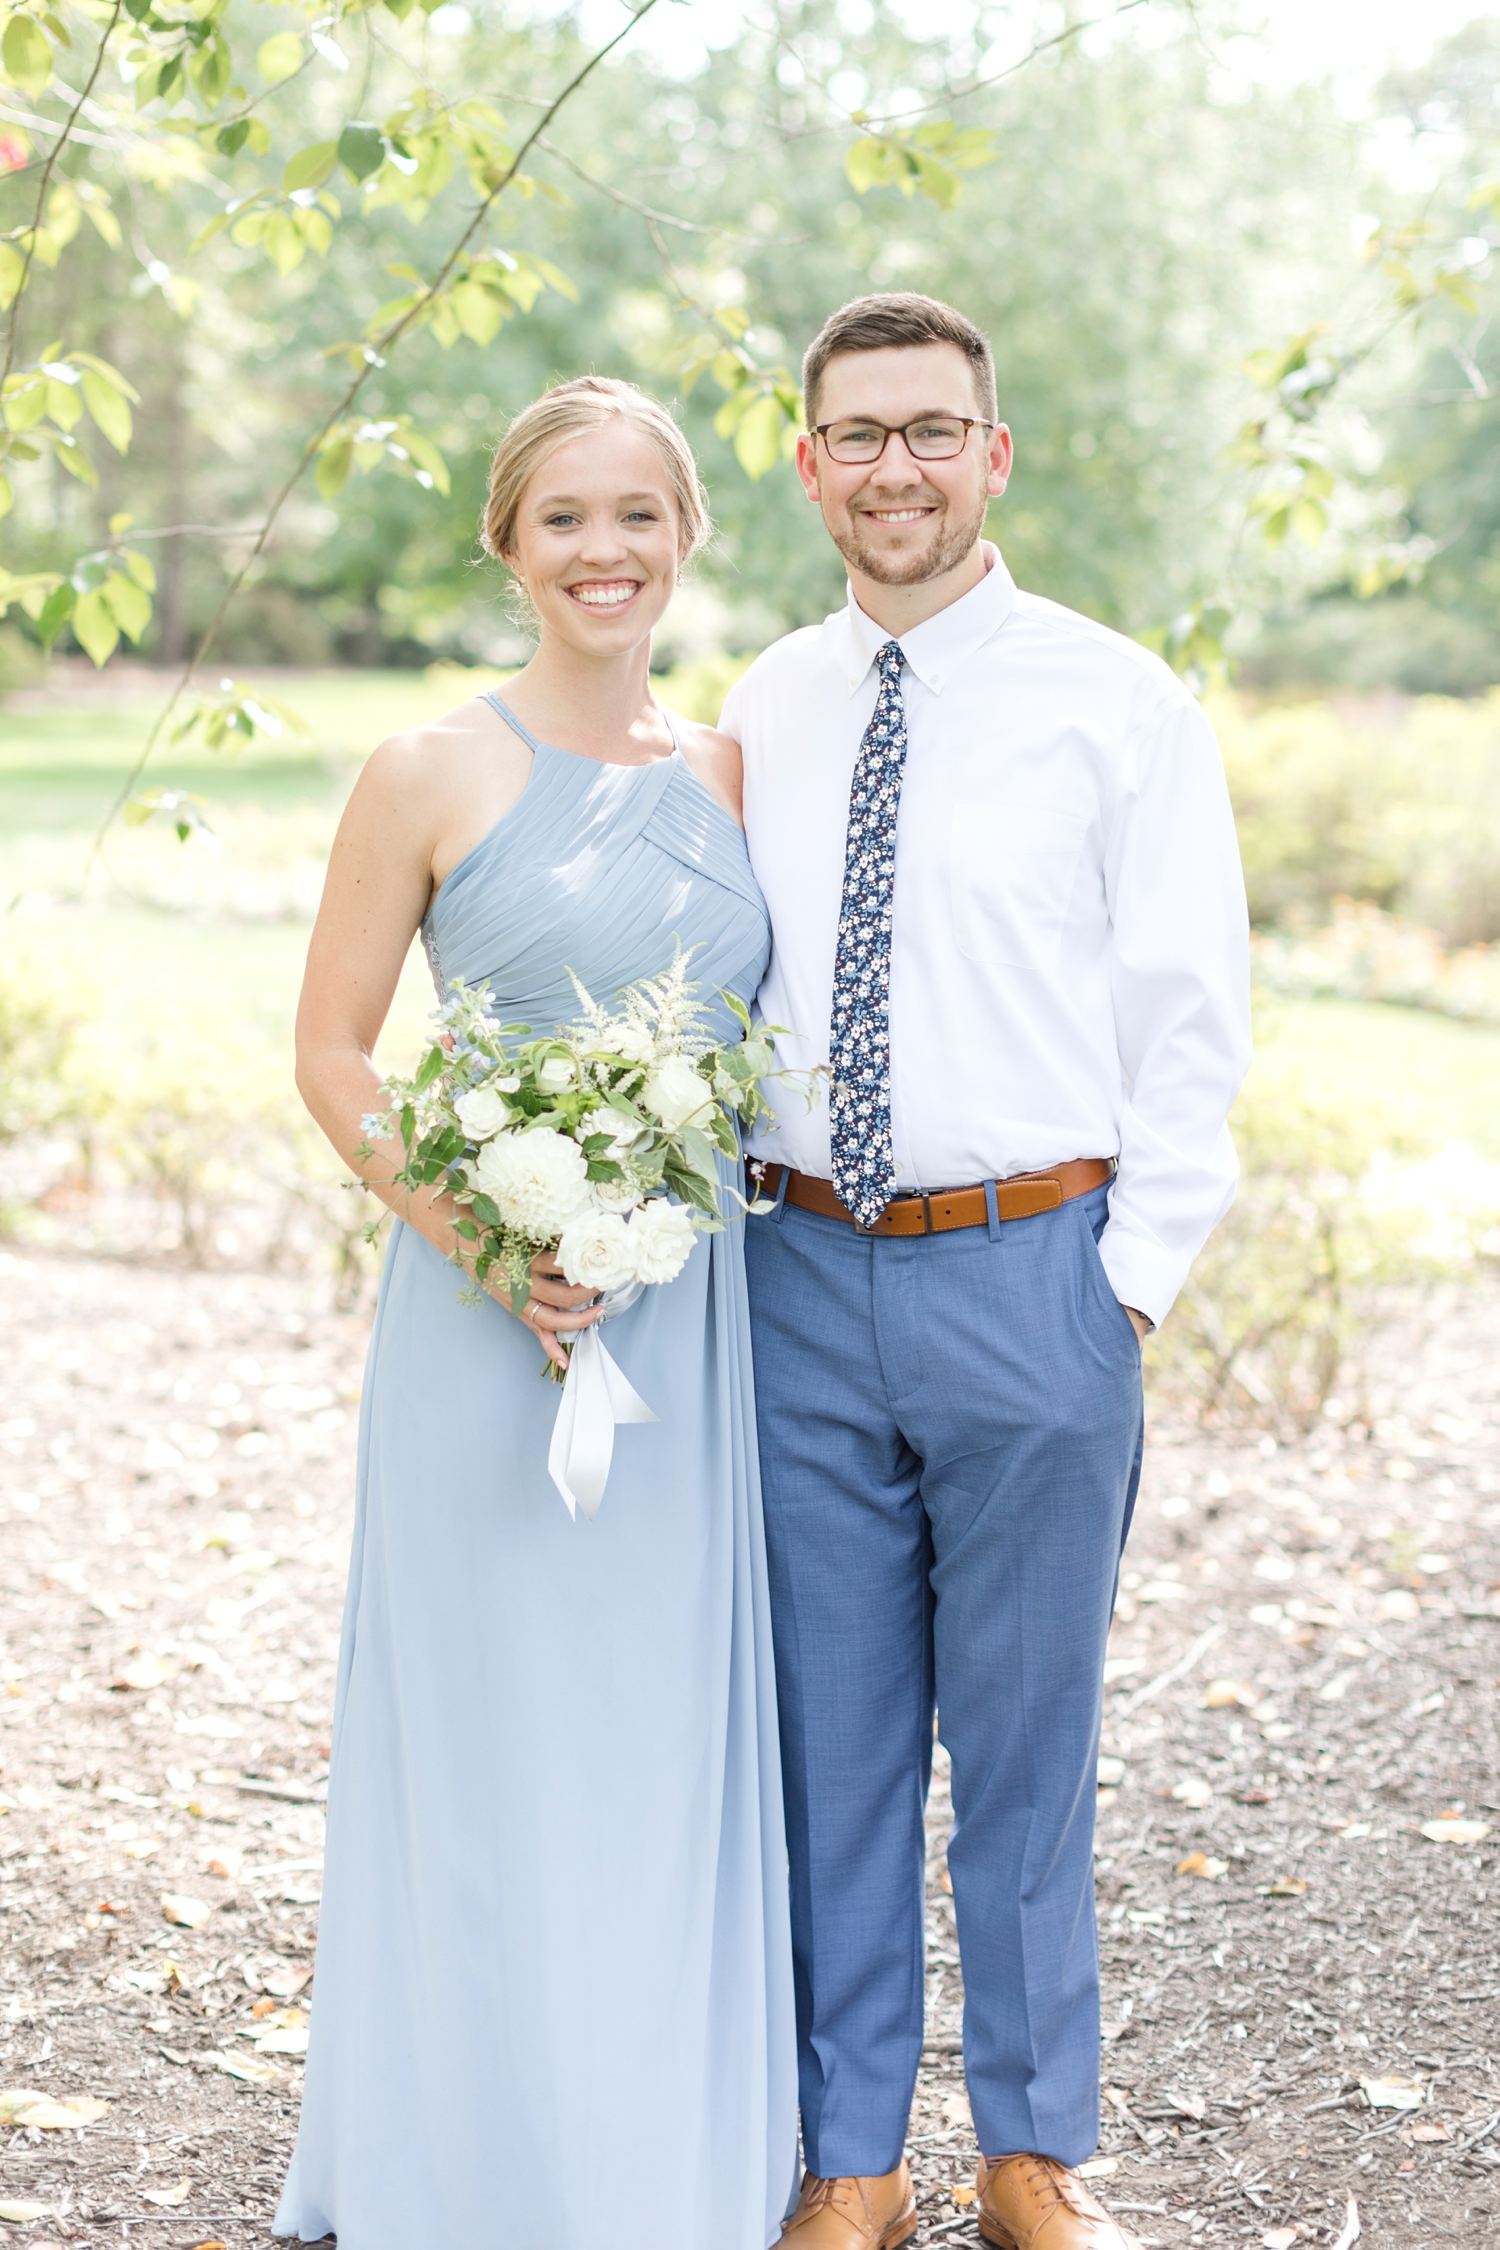 Shooting my second wedding for the Ritter family! It was so good to see  Emily and Caleb  again!